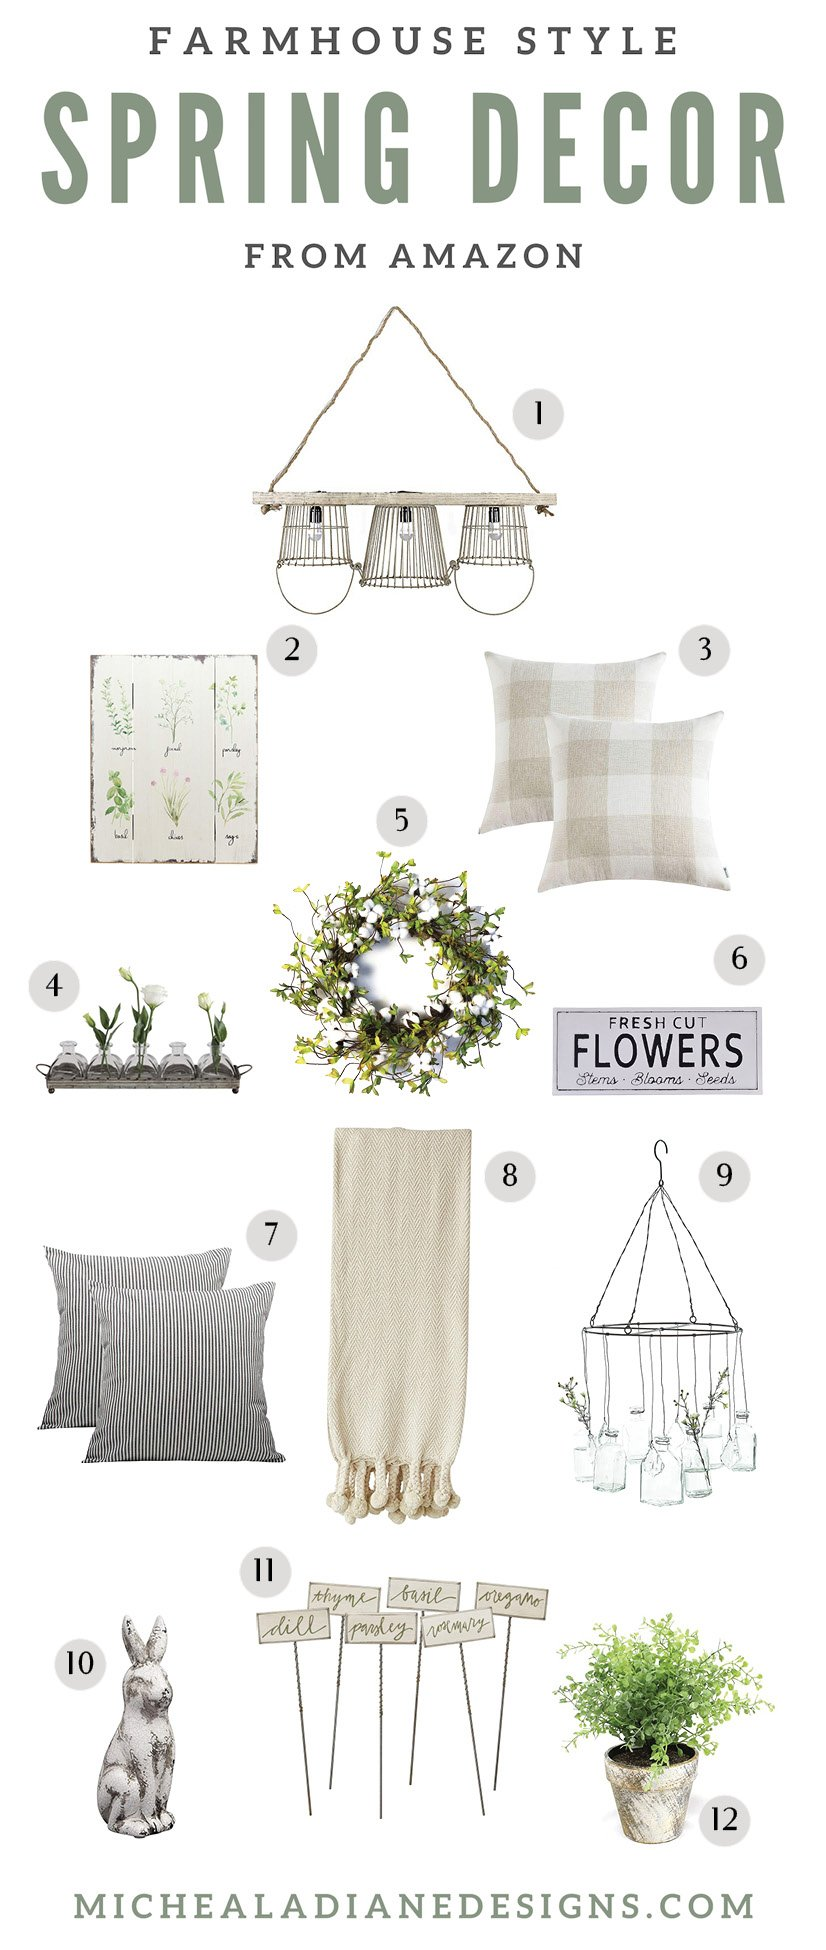 Farmhouse Style Spring Decor From Amazon